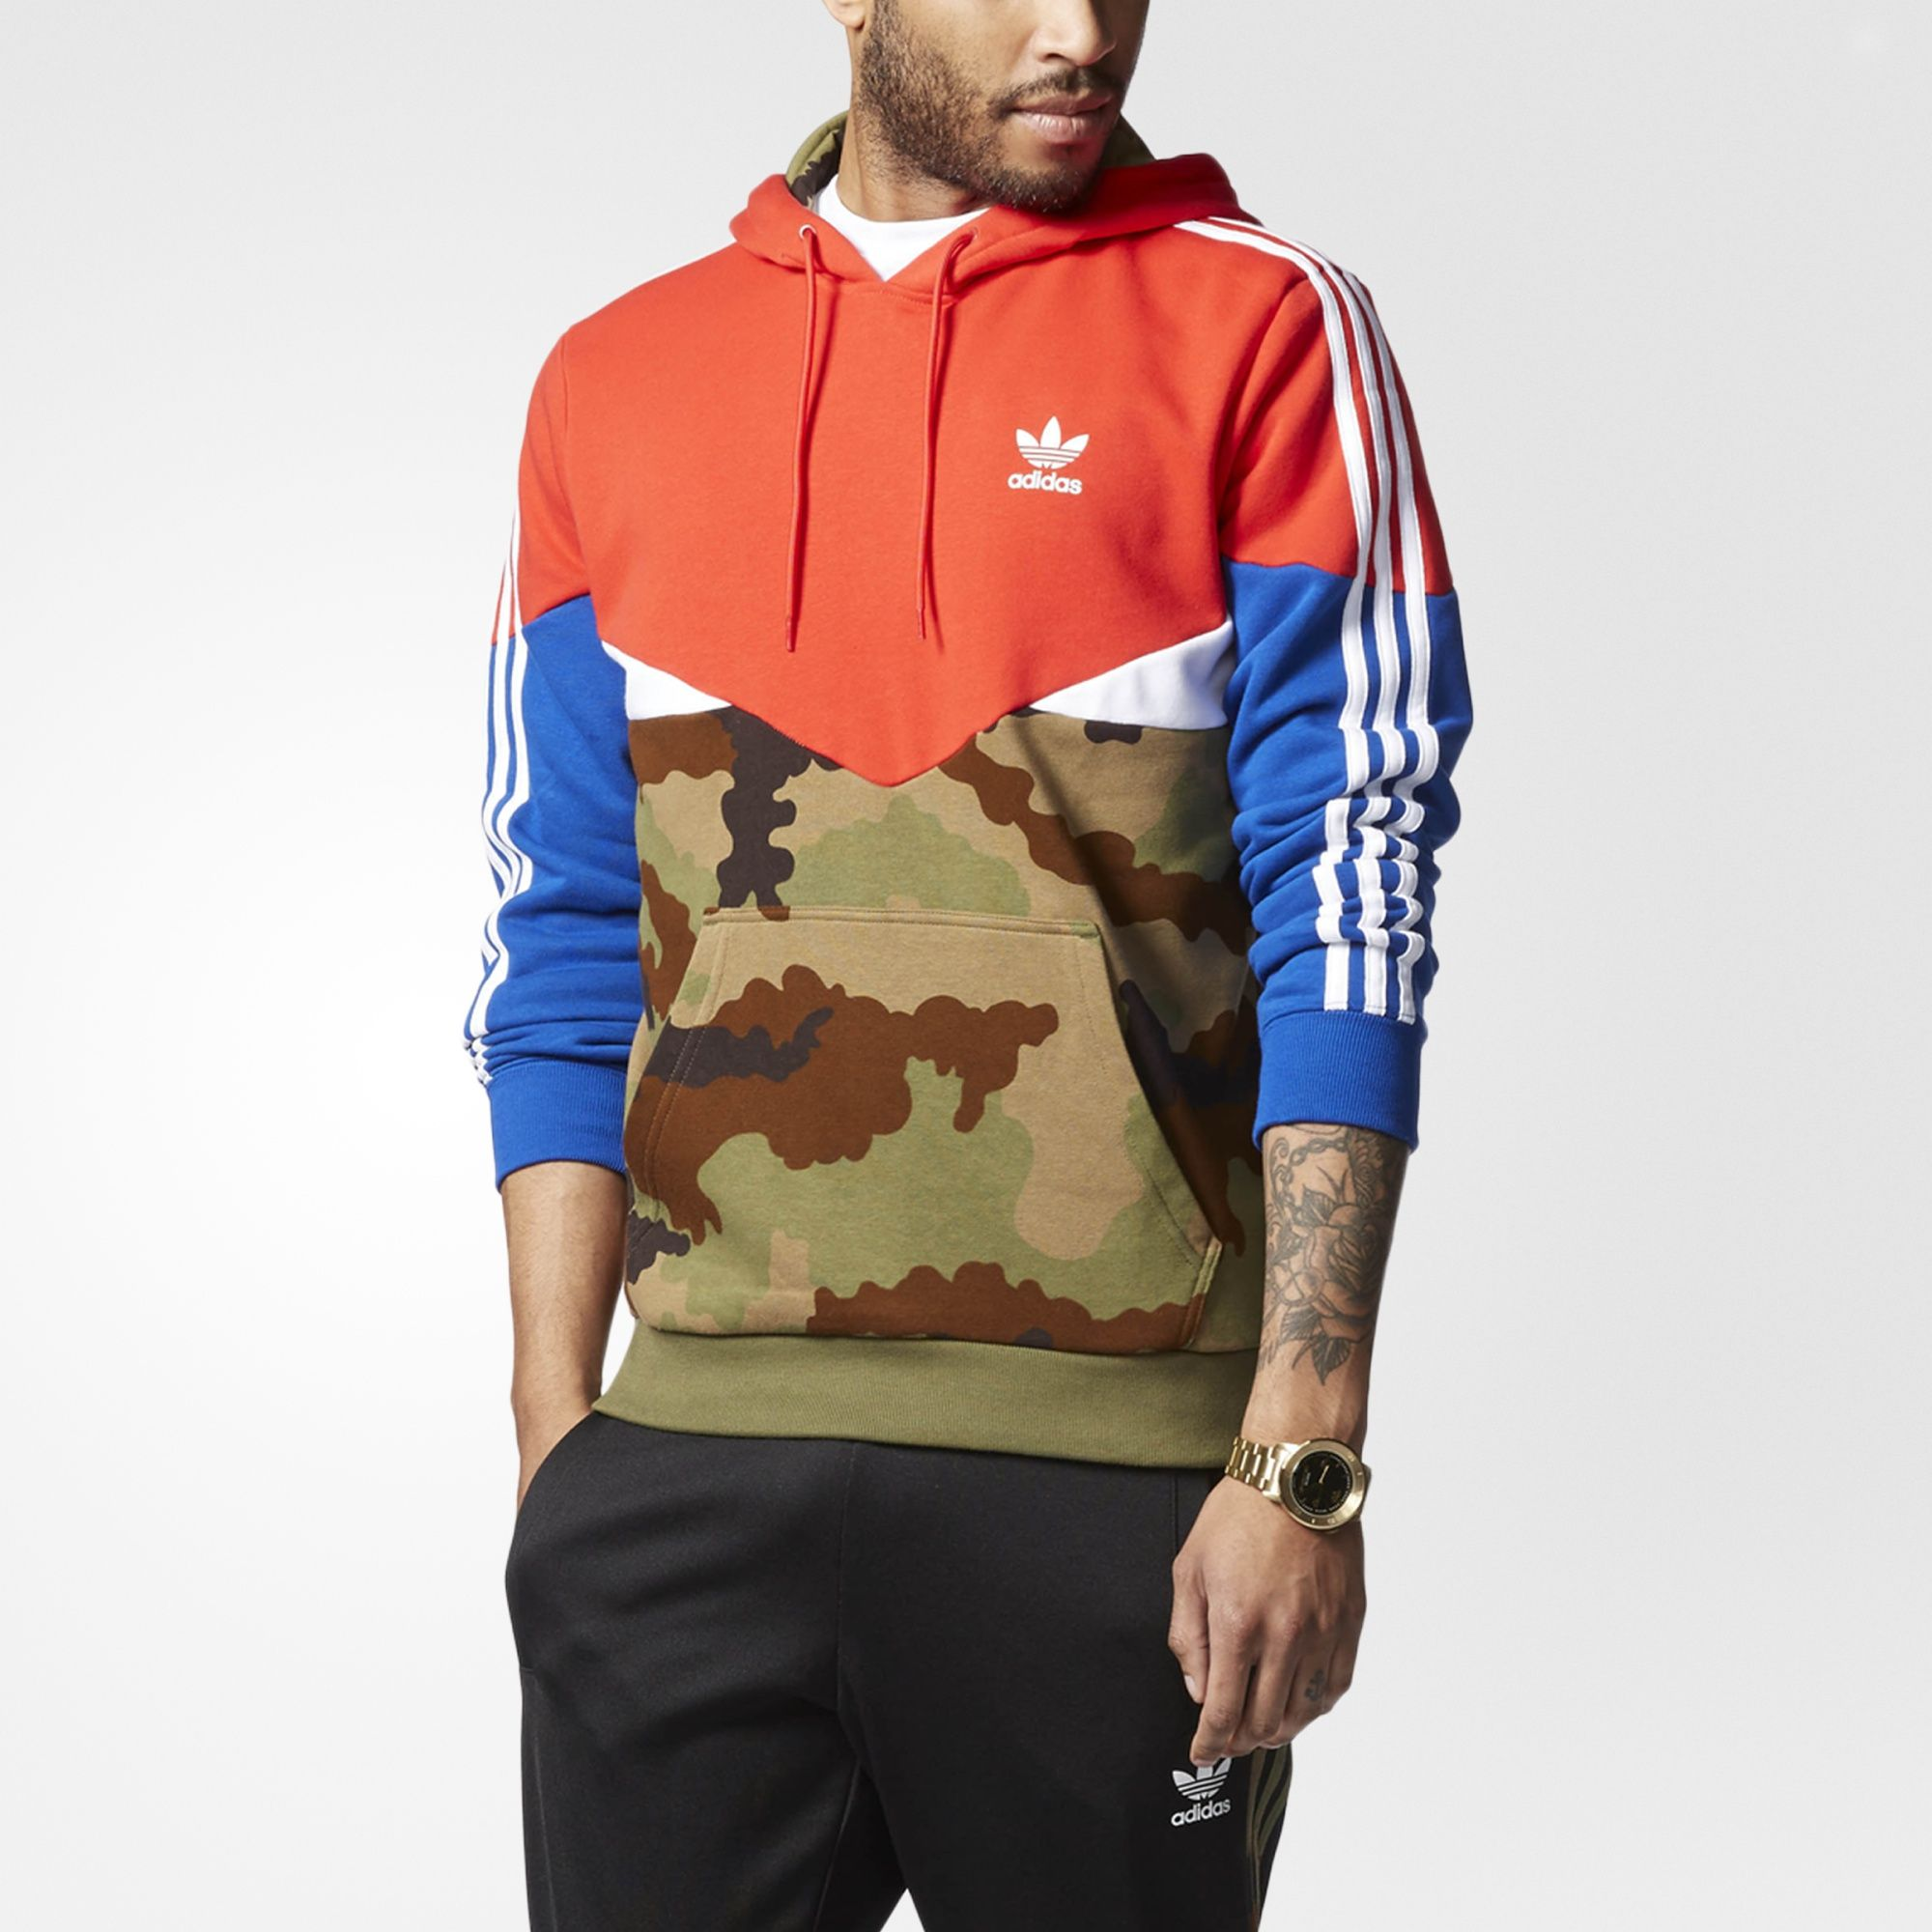 Bring back a classic archival look with this men's hoodie. Primary colors  and camouflage graphics